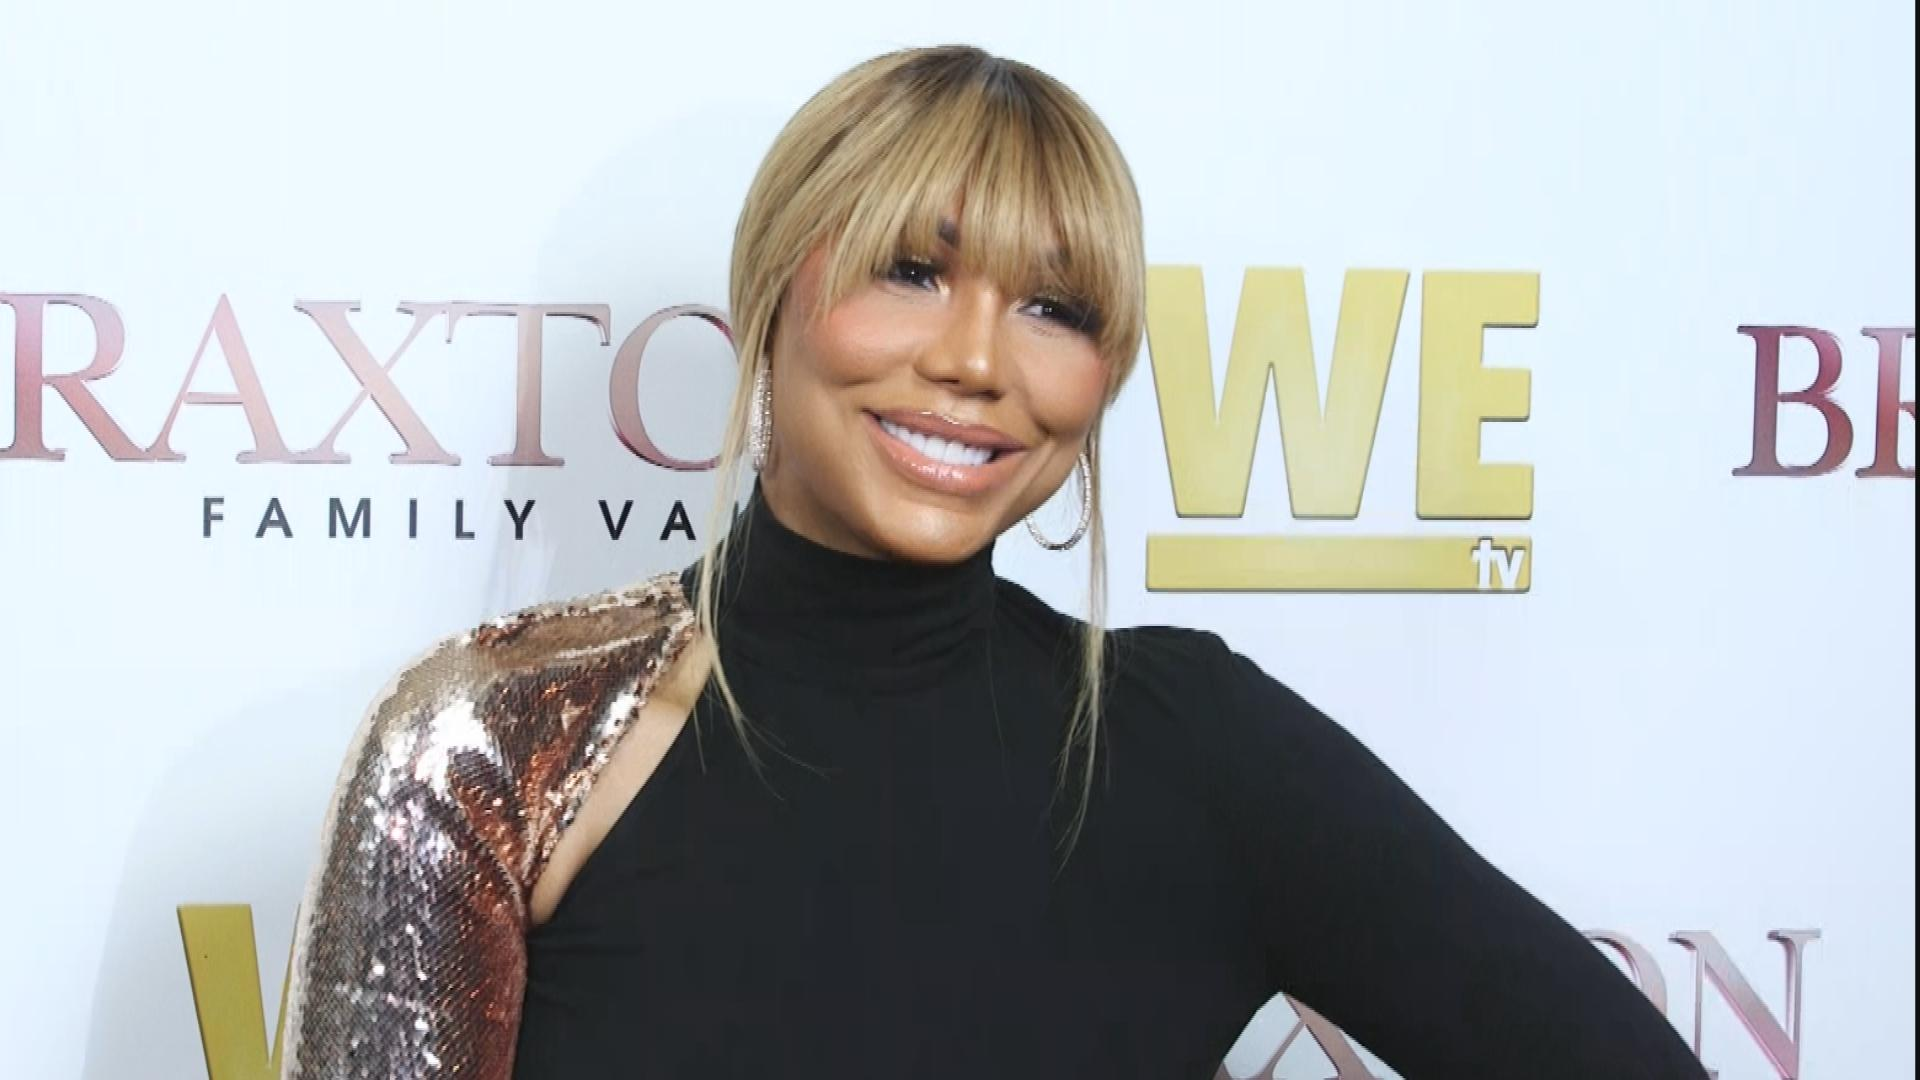 Tamar Braxton Shares 'Logan's Ride' Fort Her Boy's Birthday - Watch The Exciting Videos That Made Fans' Day